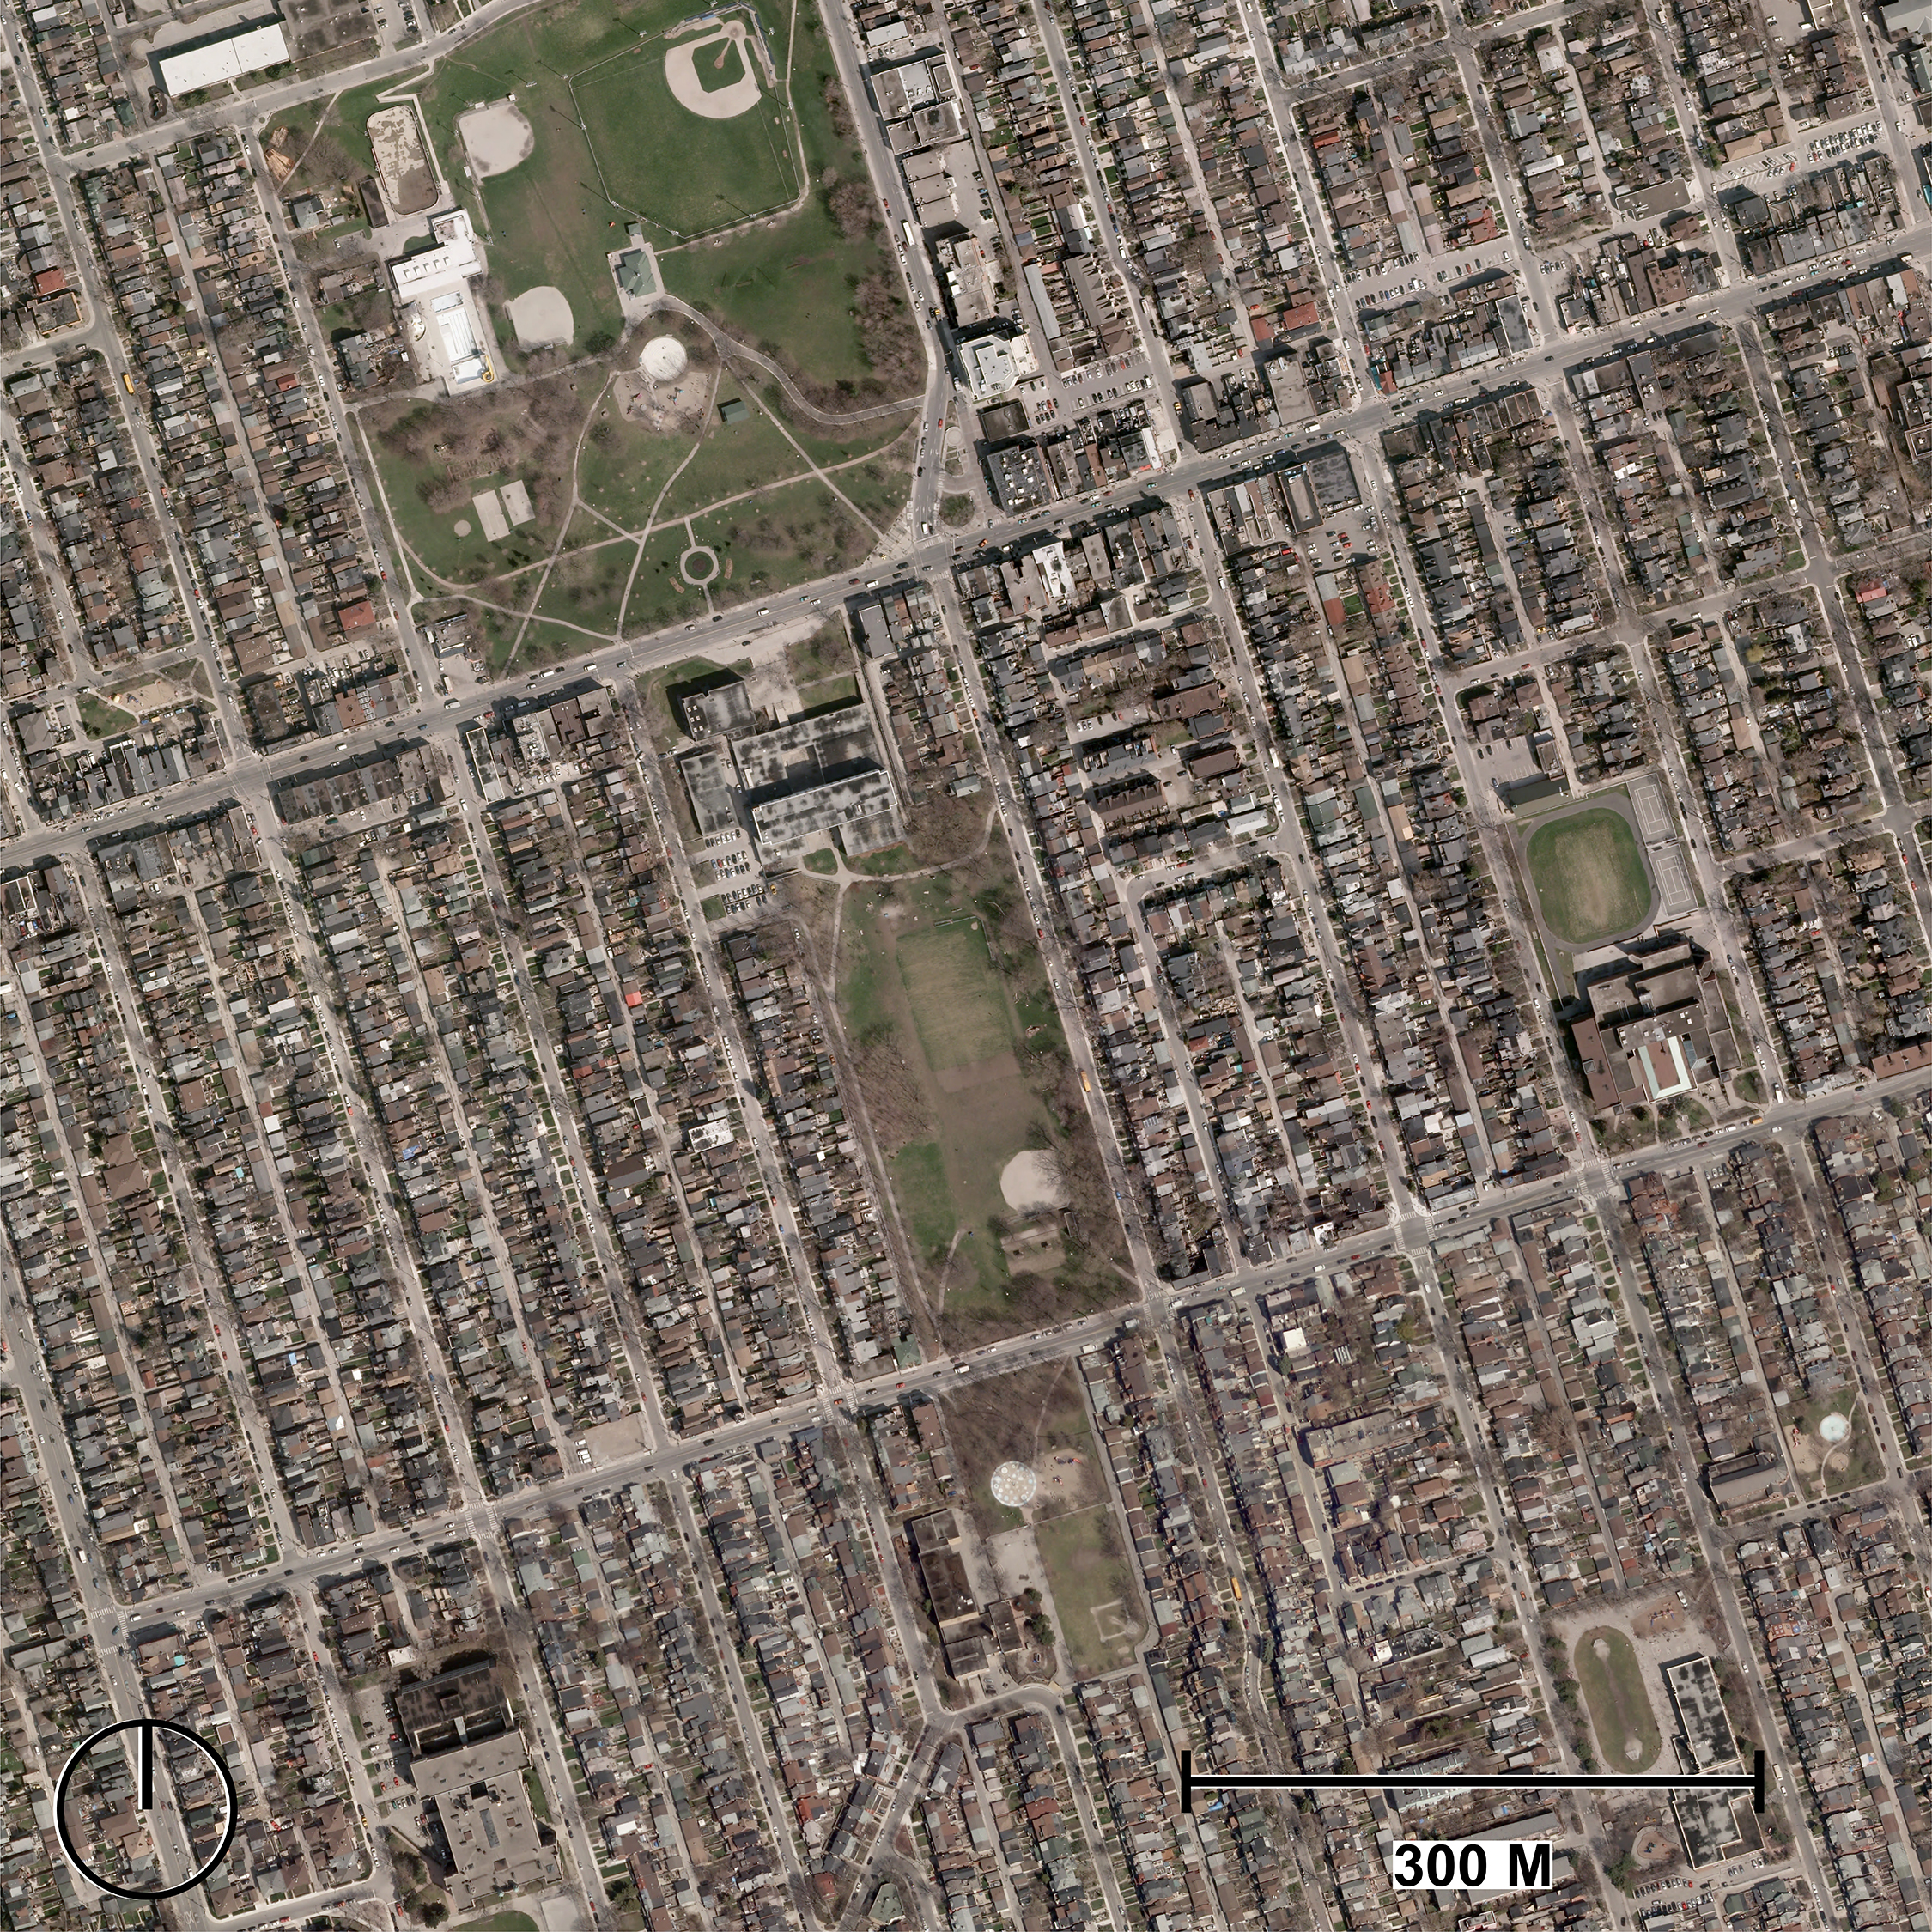 Toronto: Natural Beauty buried under the Colonial Grid